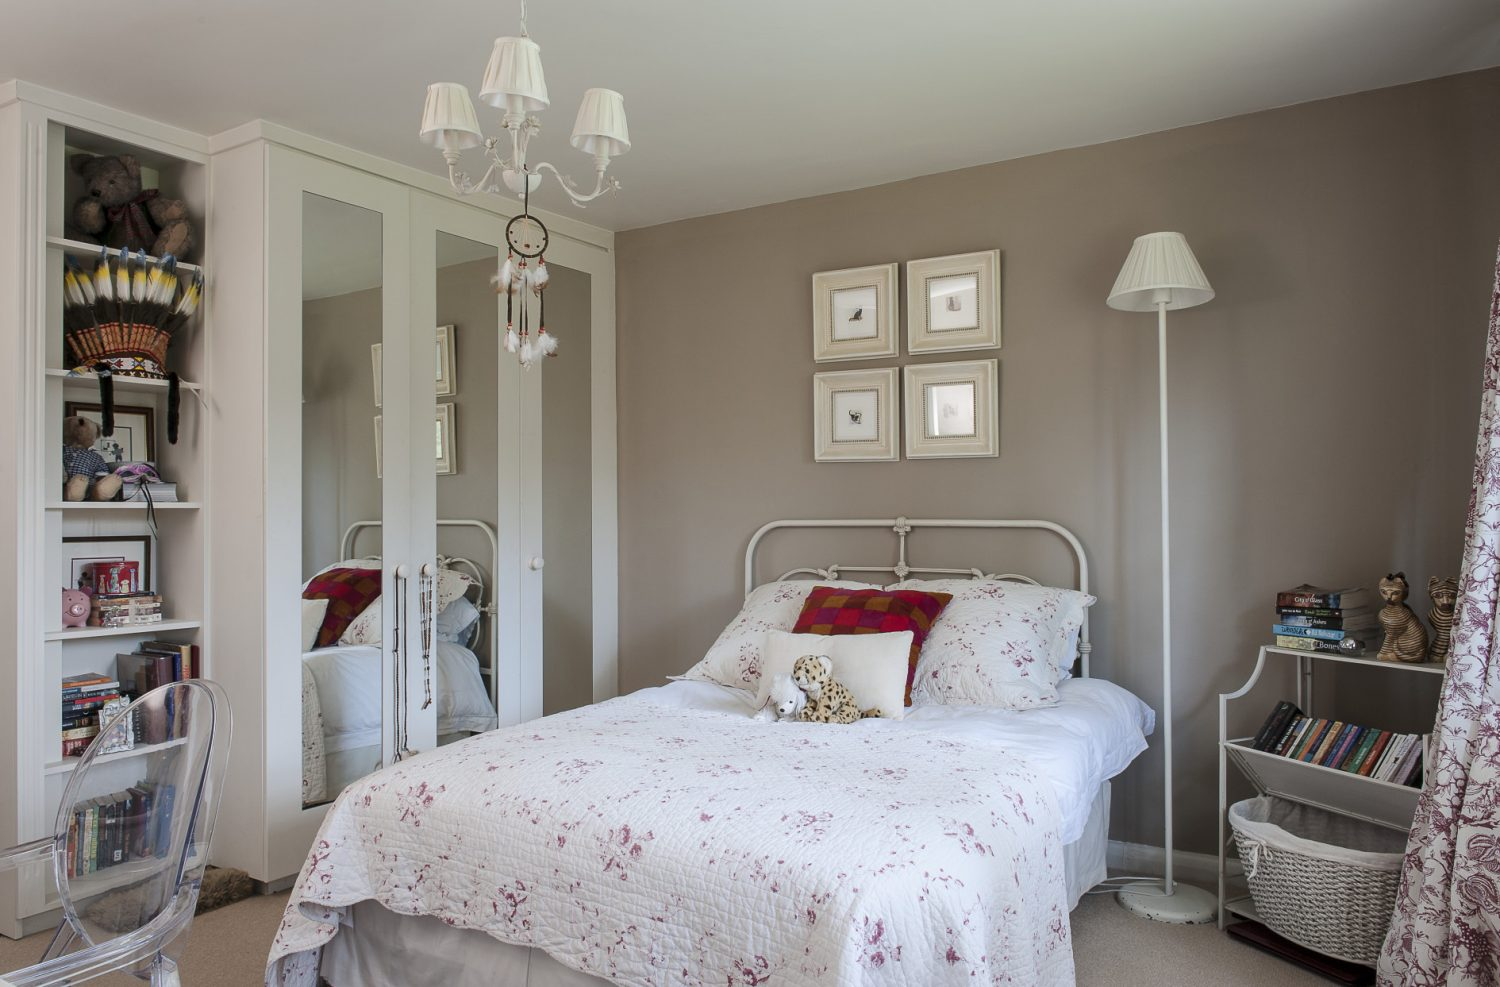 Adele's daughter's room is a blizzard of white with warmth provided by the raspberry étoile curtains. The bed's cast-iron headpiece came with her from South Africa